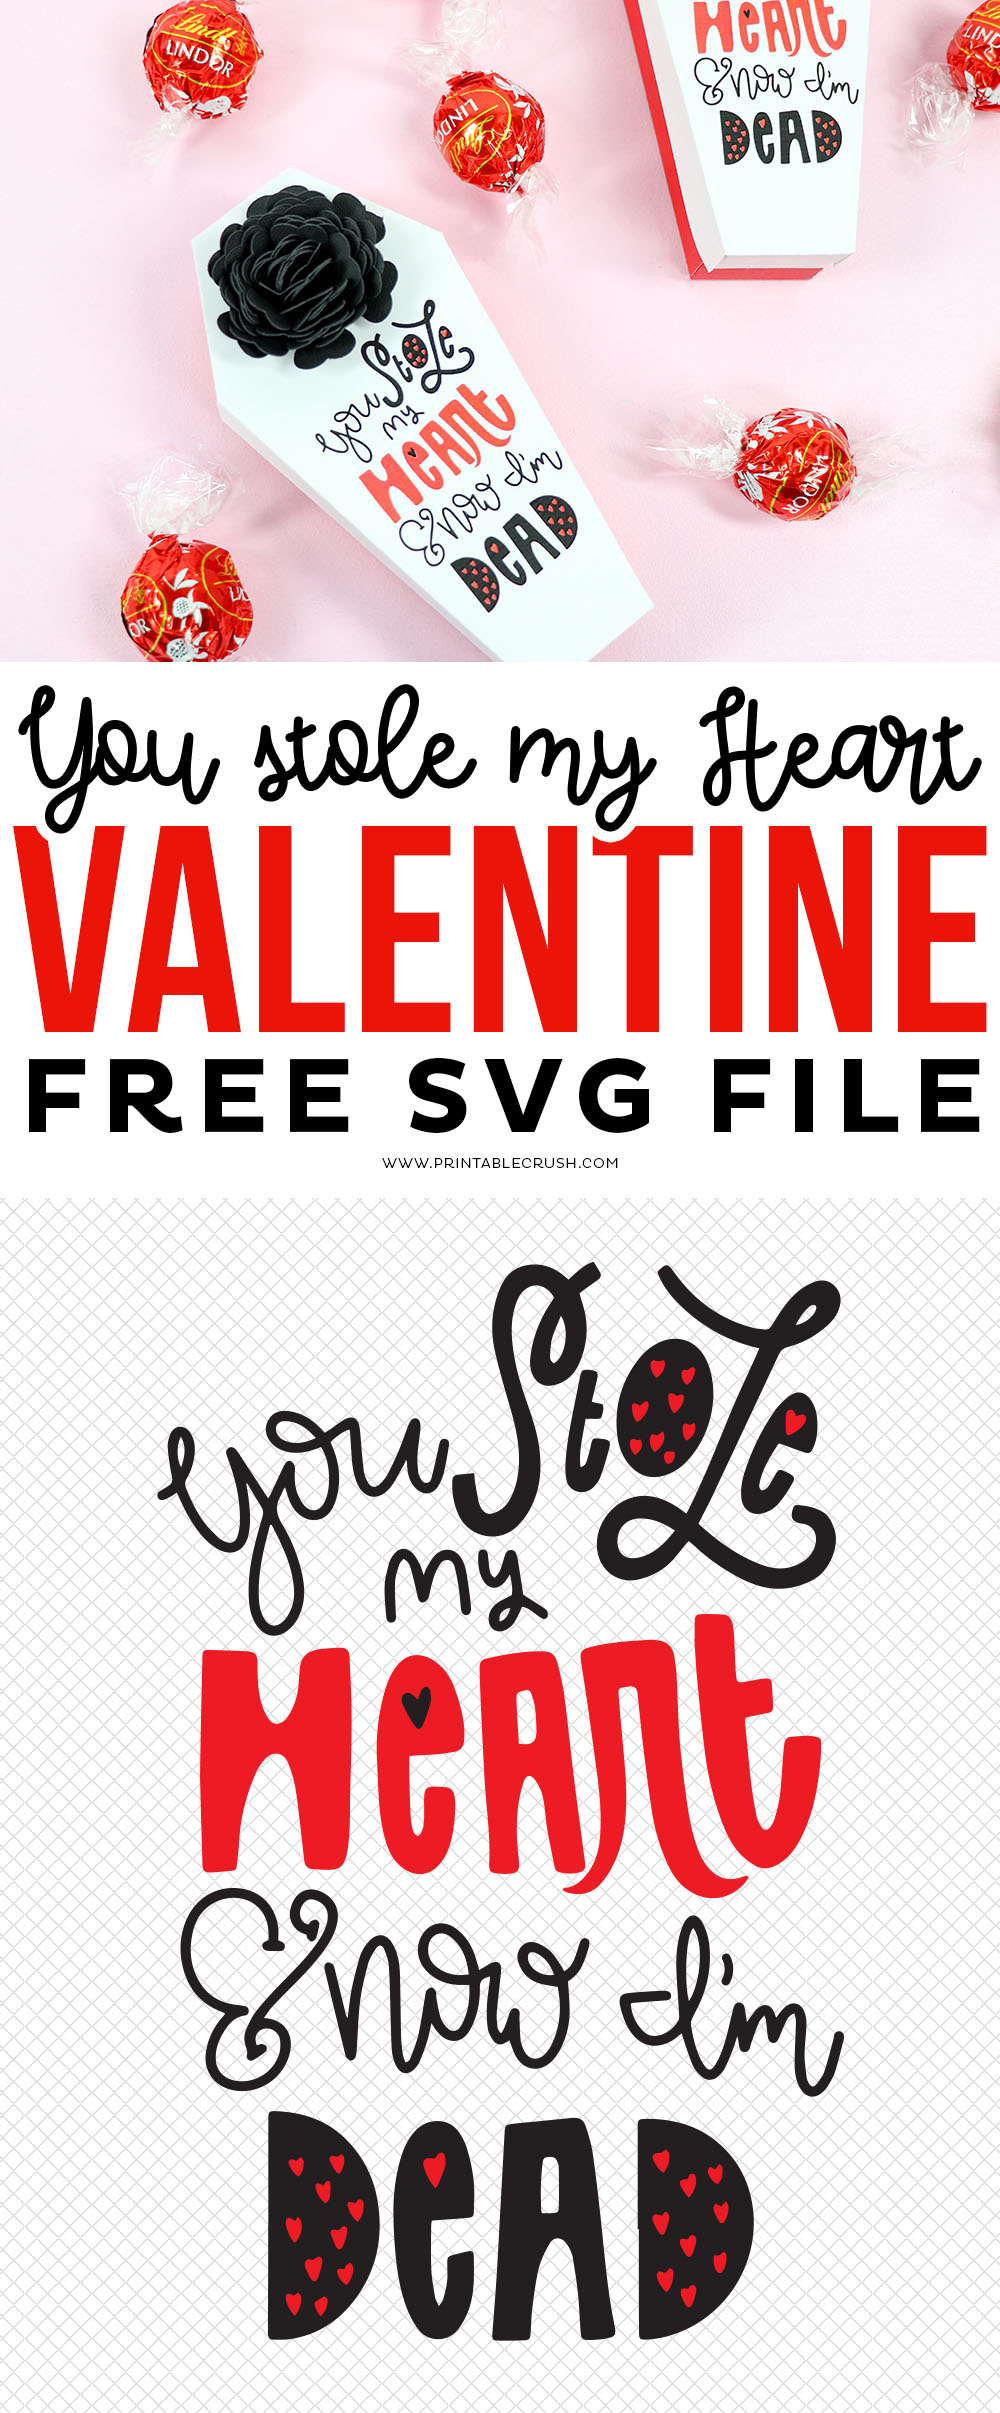 Morbid and Free Valentine SVG File